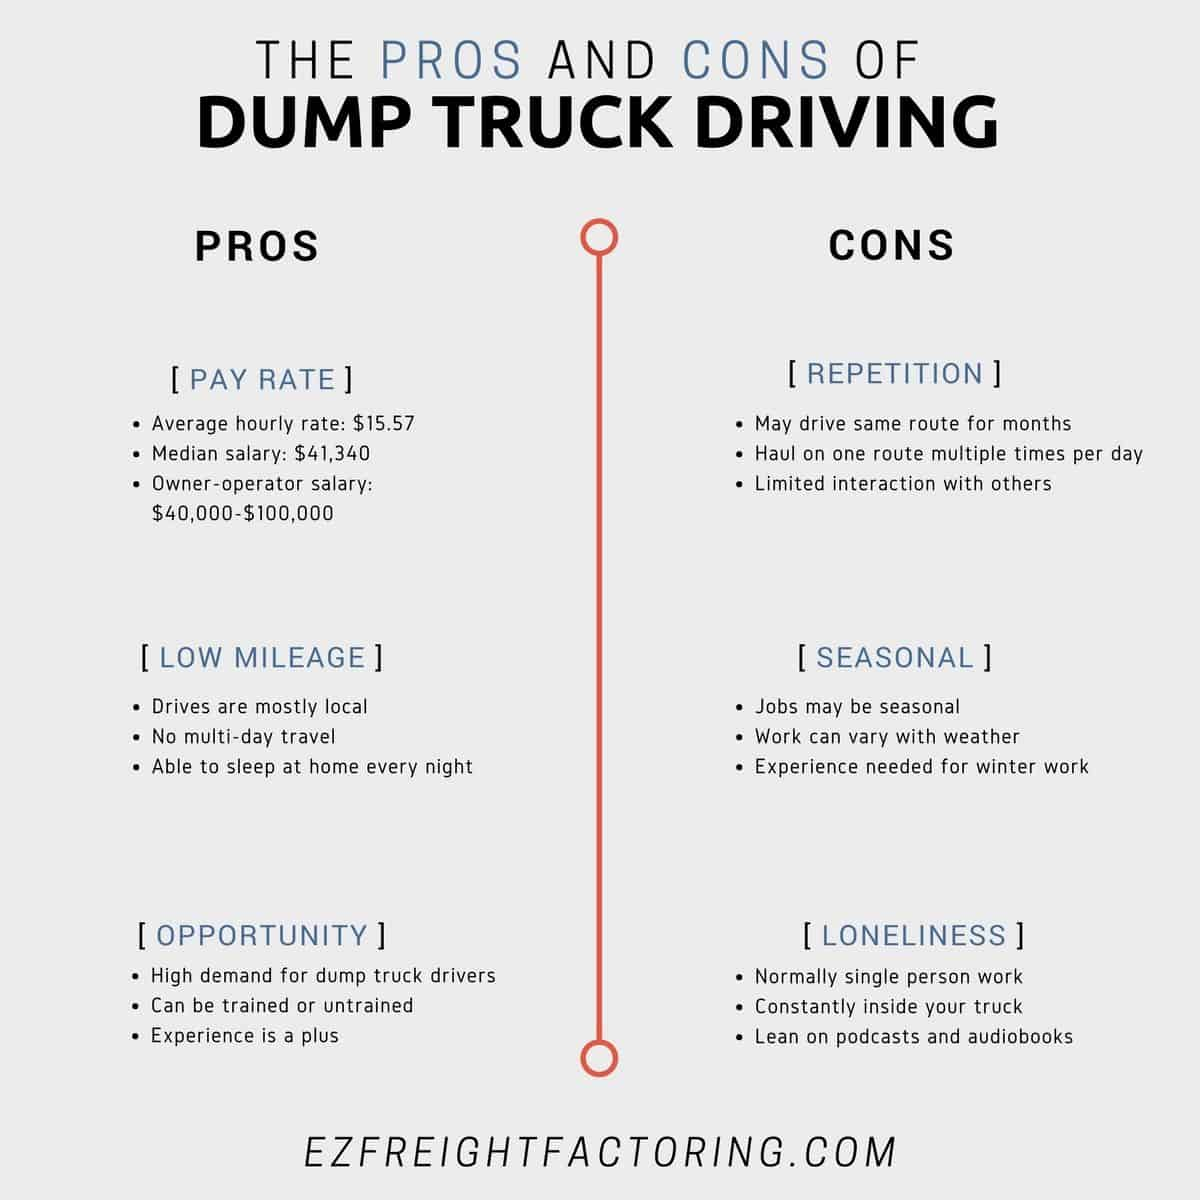 The Pros and Cons of Dump Truck Driving | EZ Freight Factoring